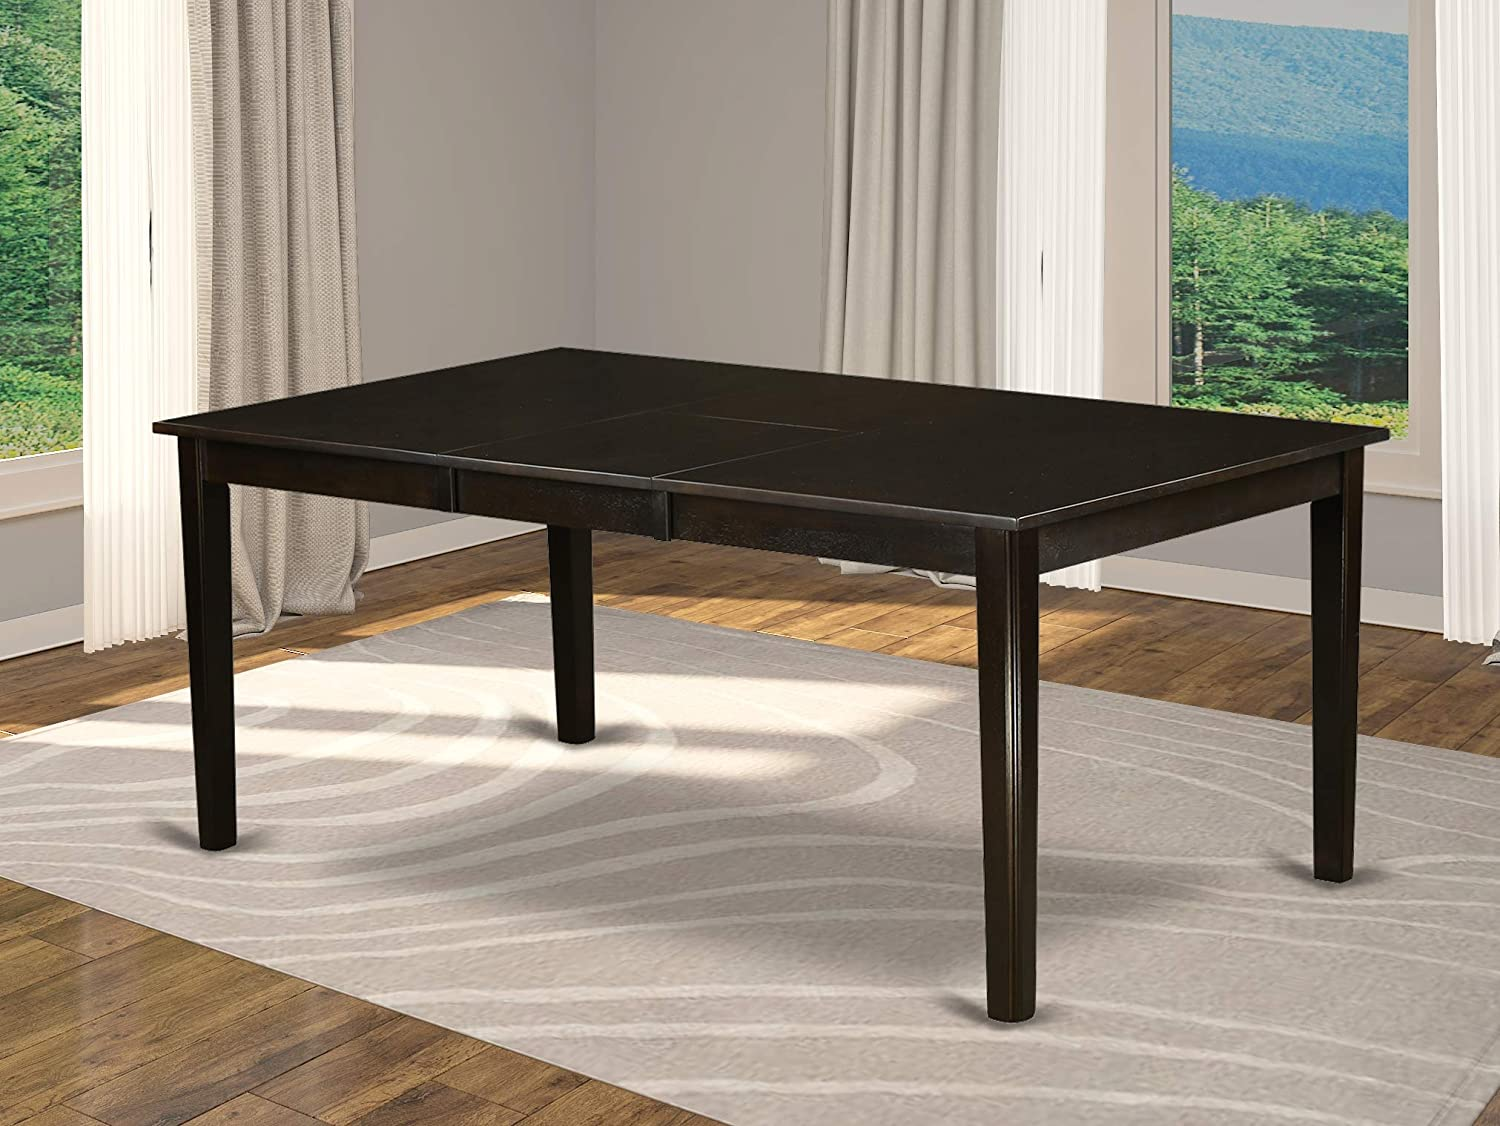 East West Furniture HET-CAP-T Rectangular Dining Room Table with 18-Inch Butterfly Leaf